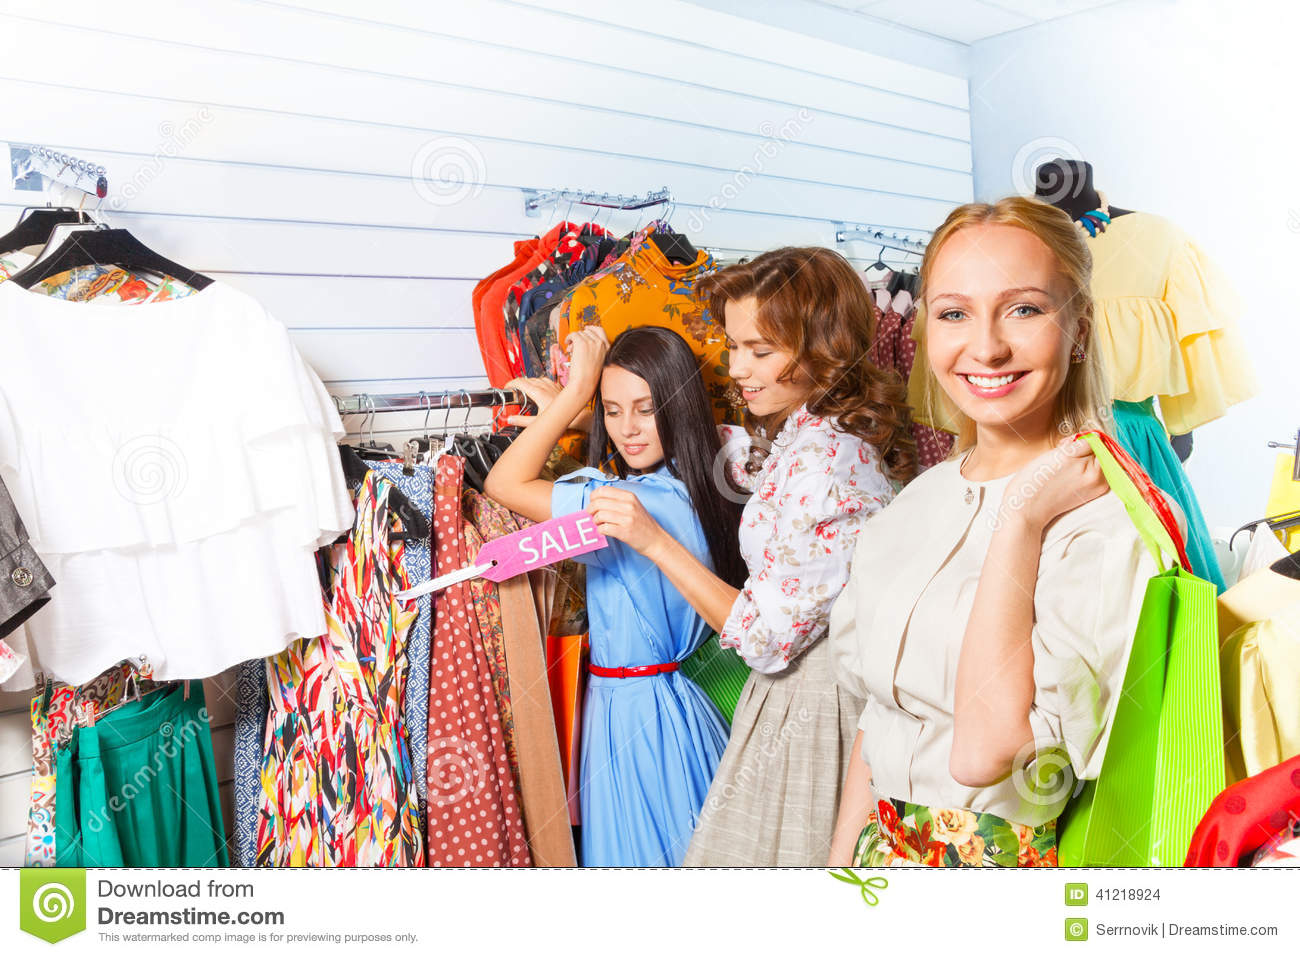 Spring clothes for women on sale